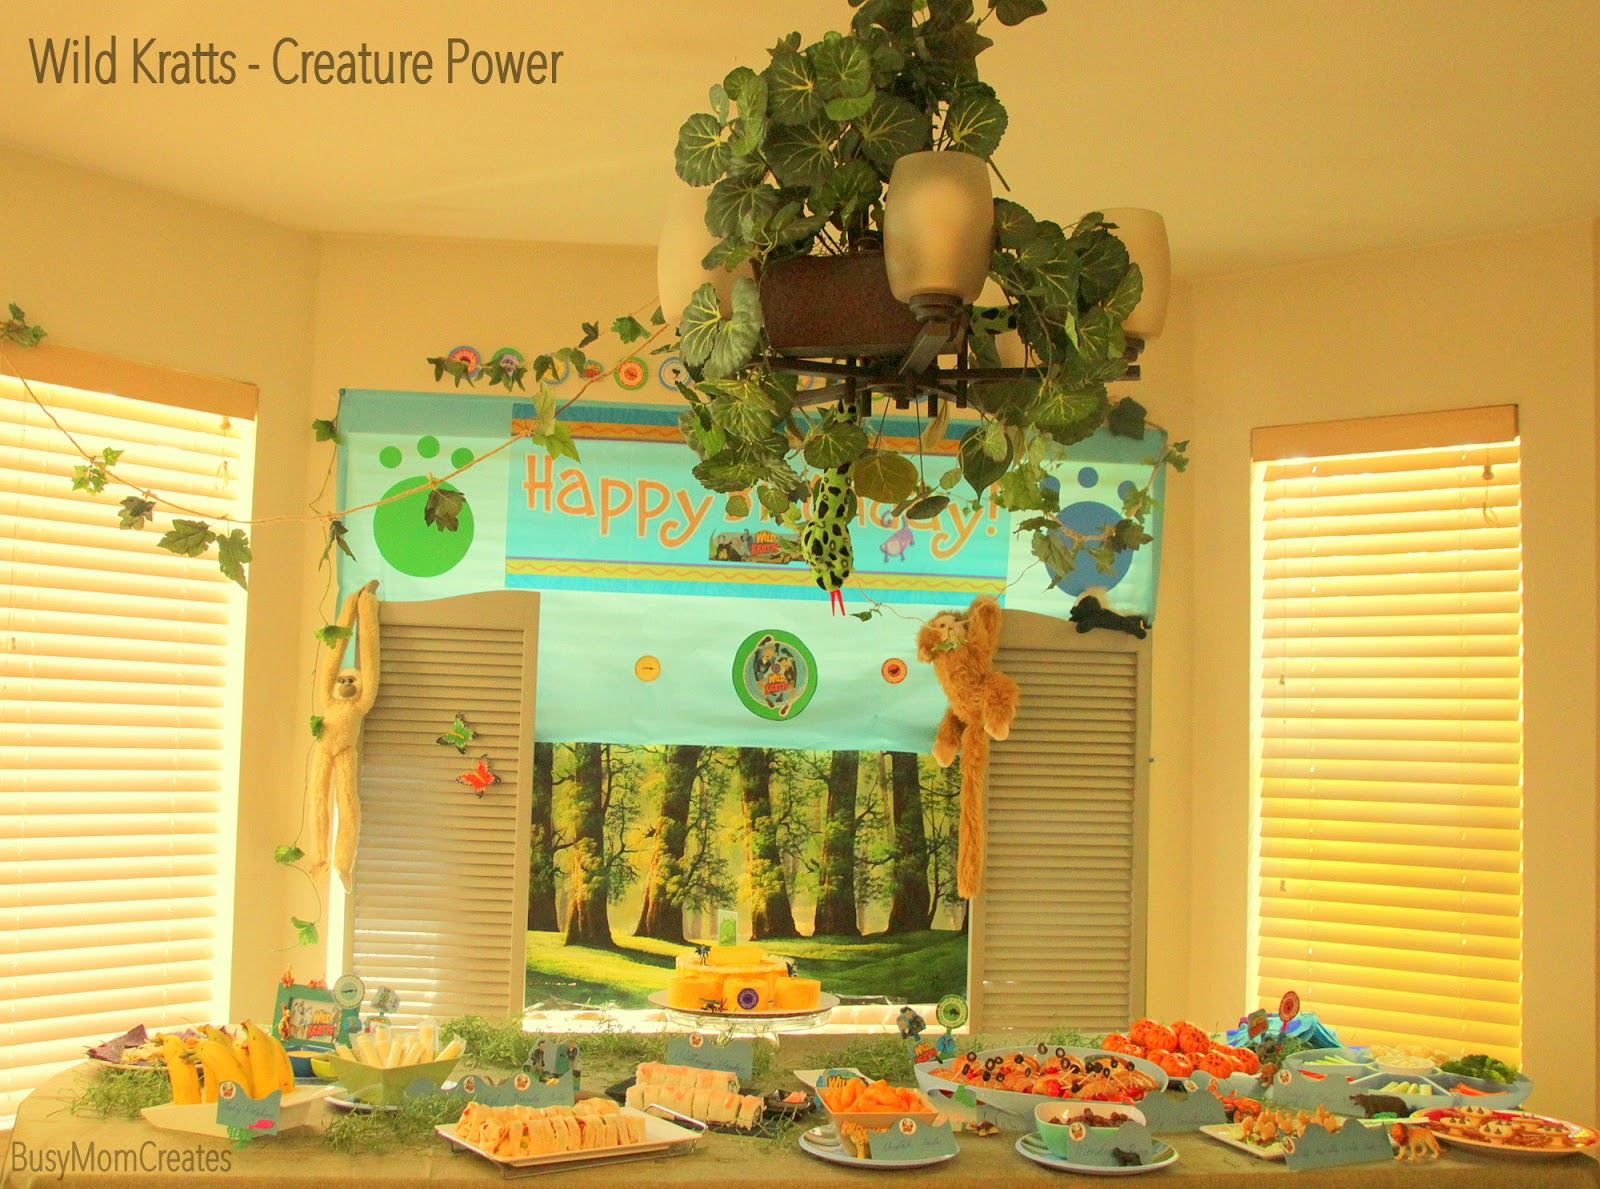 Wild Kratts Creature Power Themed Birthday Party